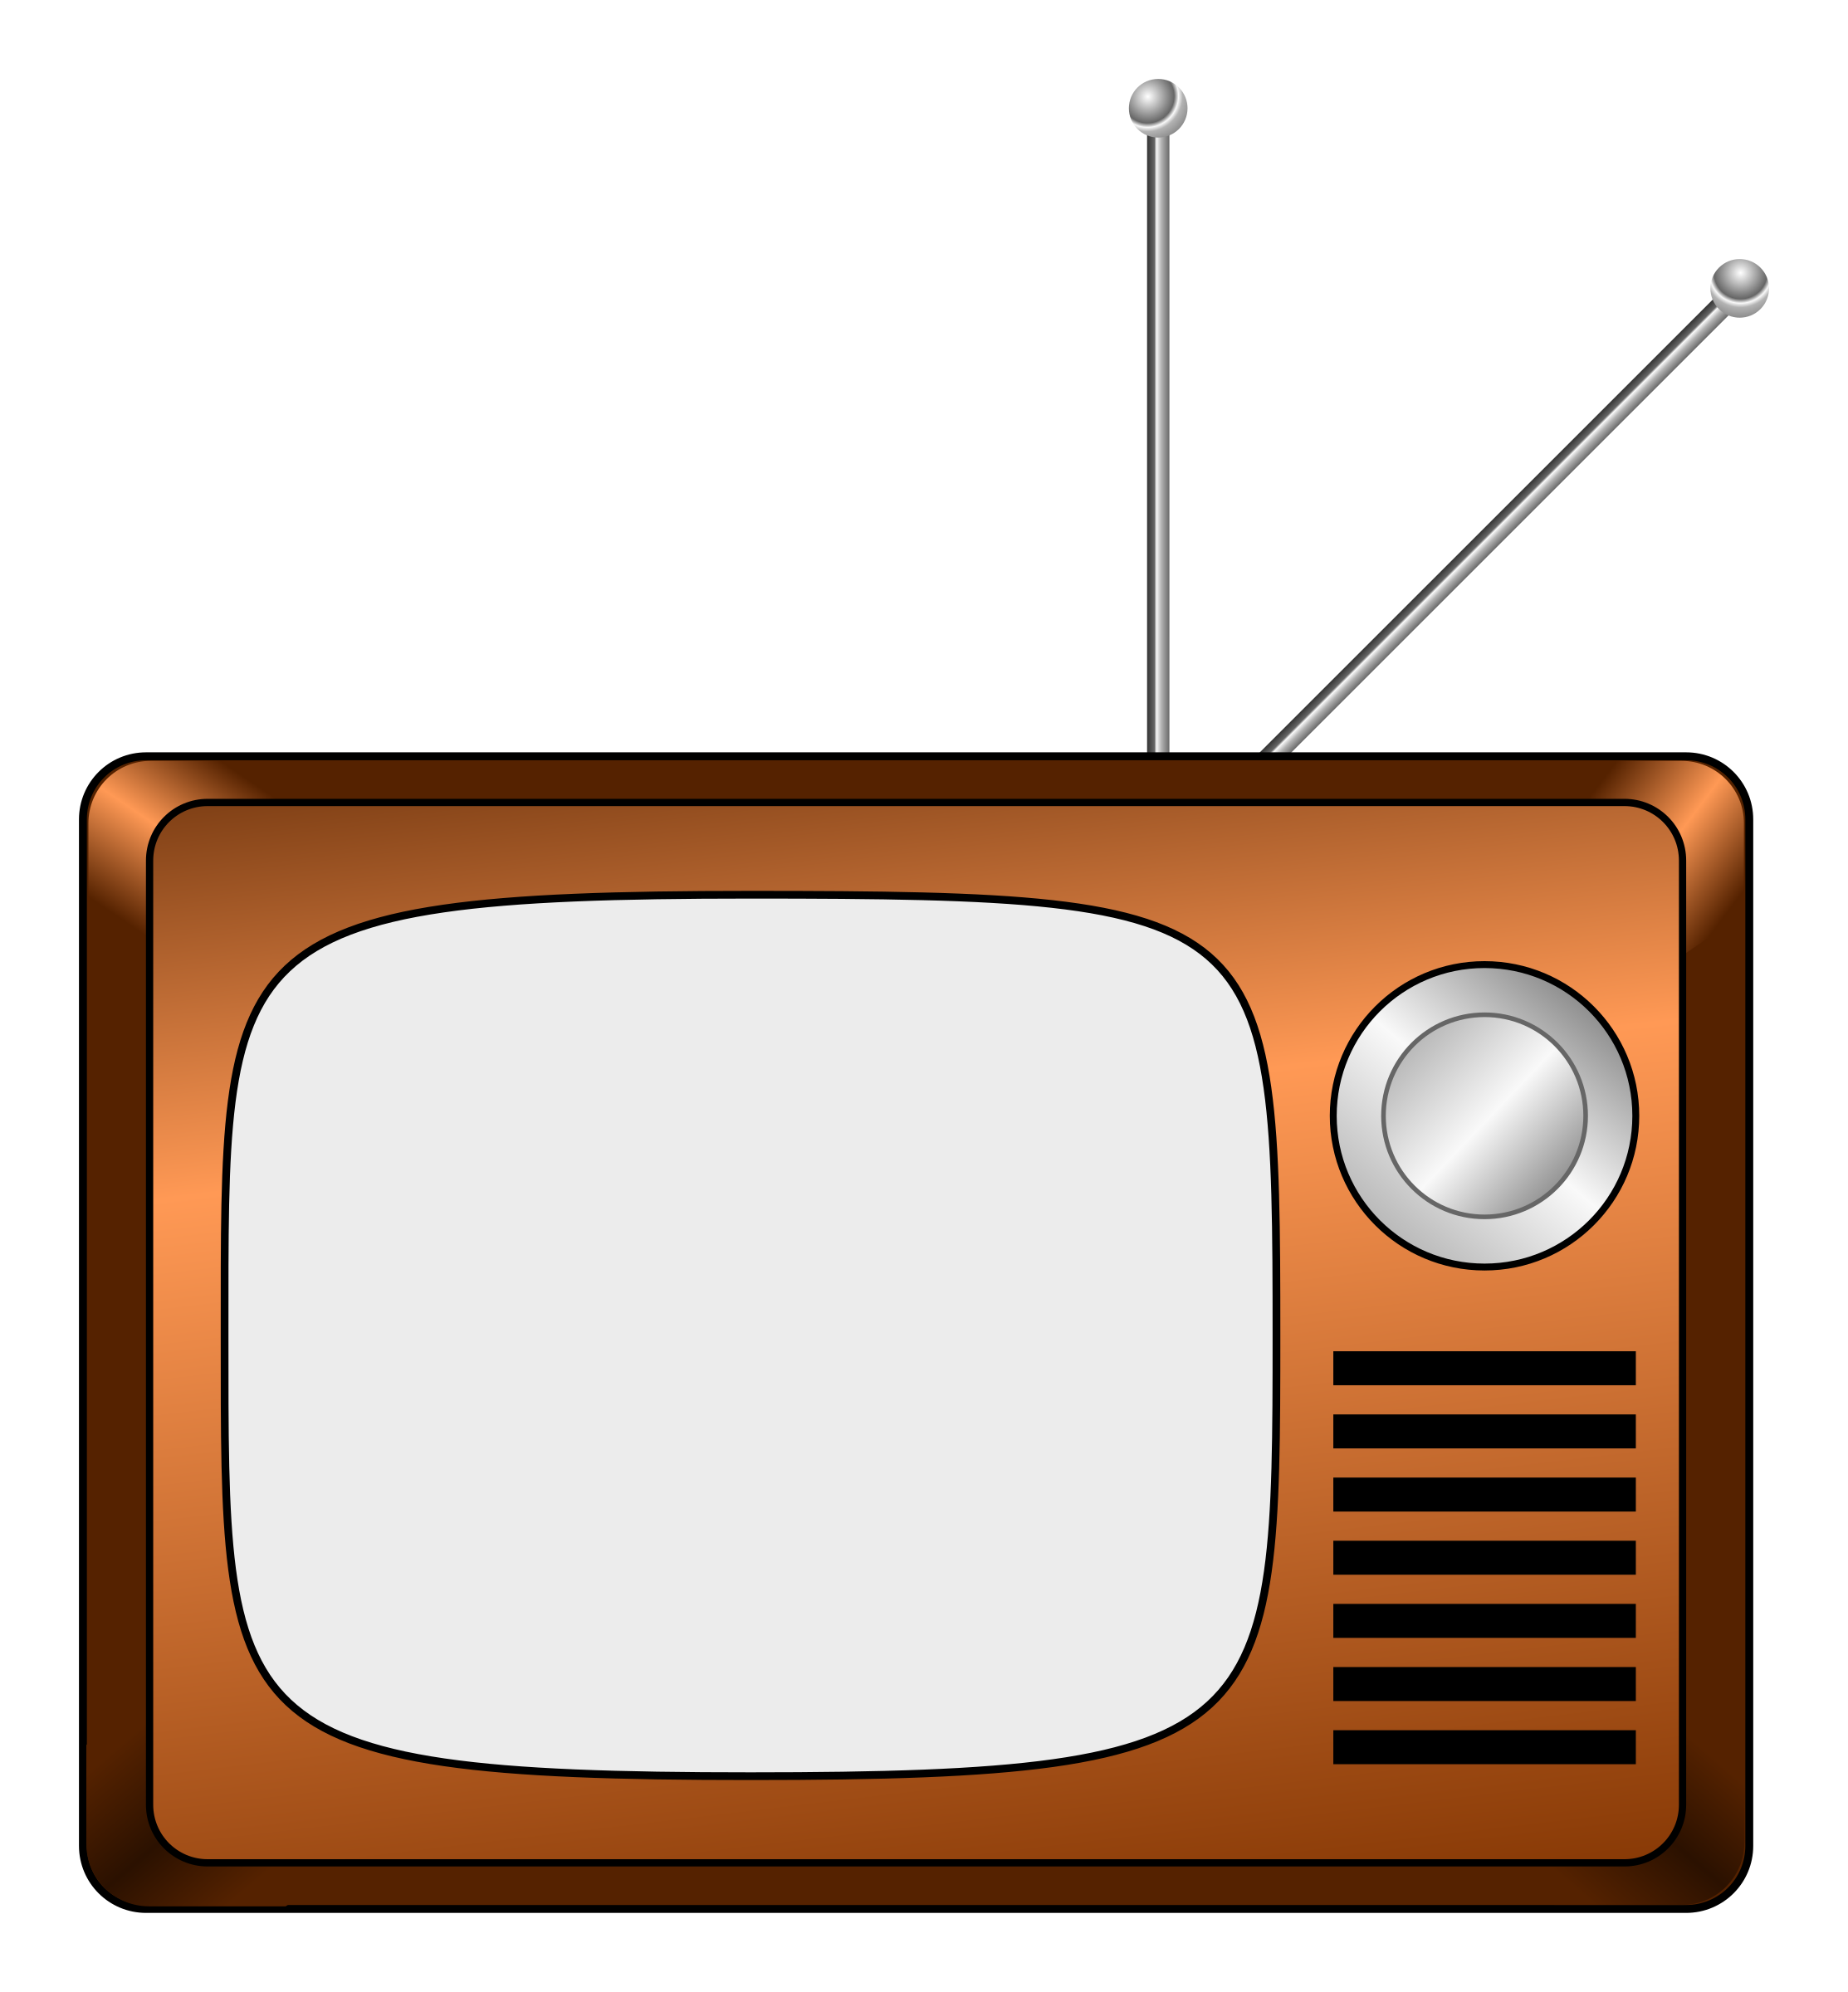 Television clip art png. Old image purepng free